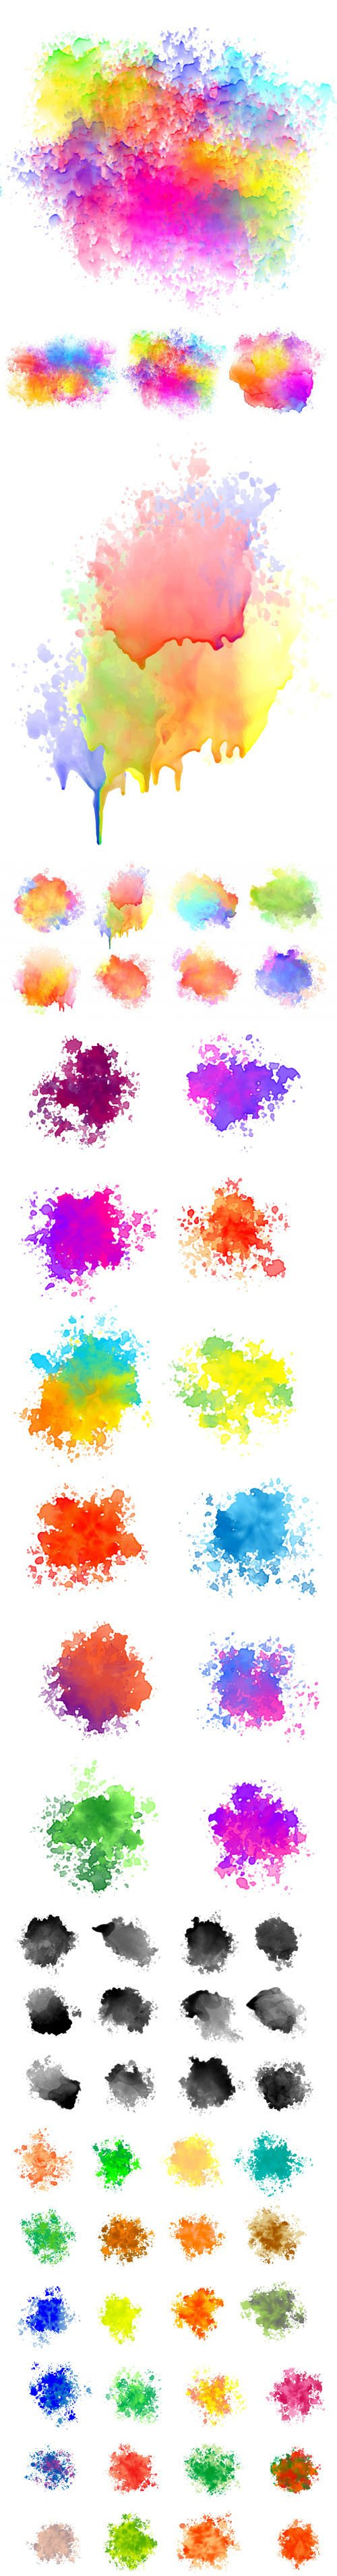 Collection Of Watercolor Splatter Vector Templates